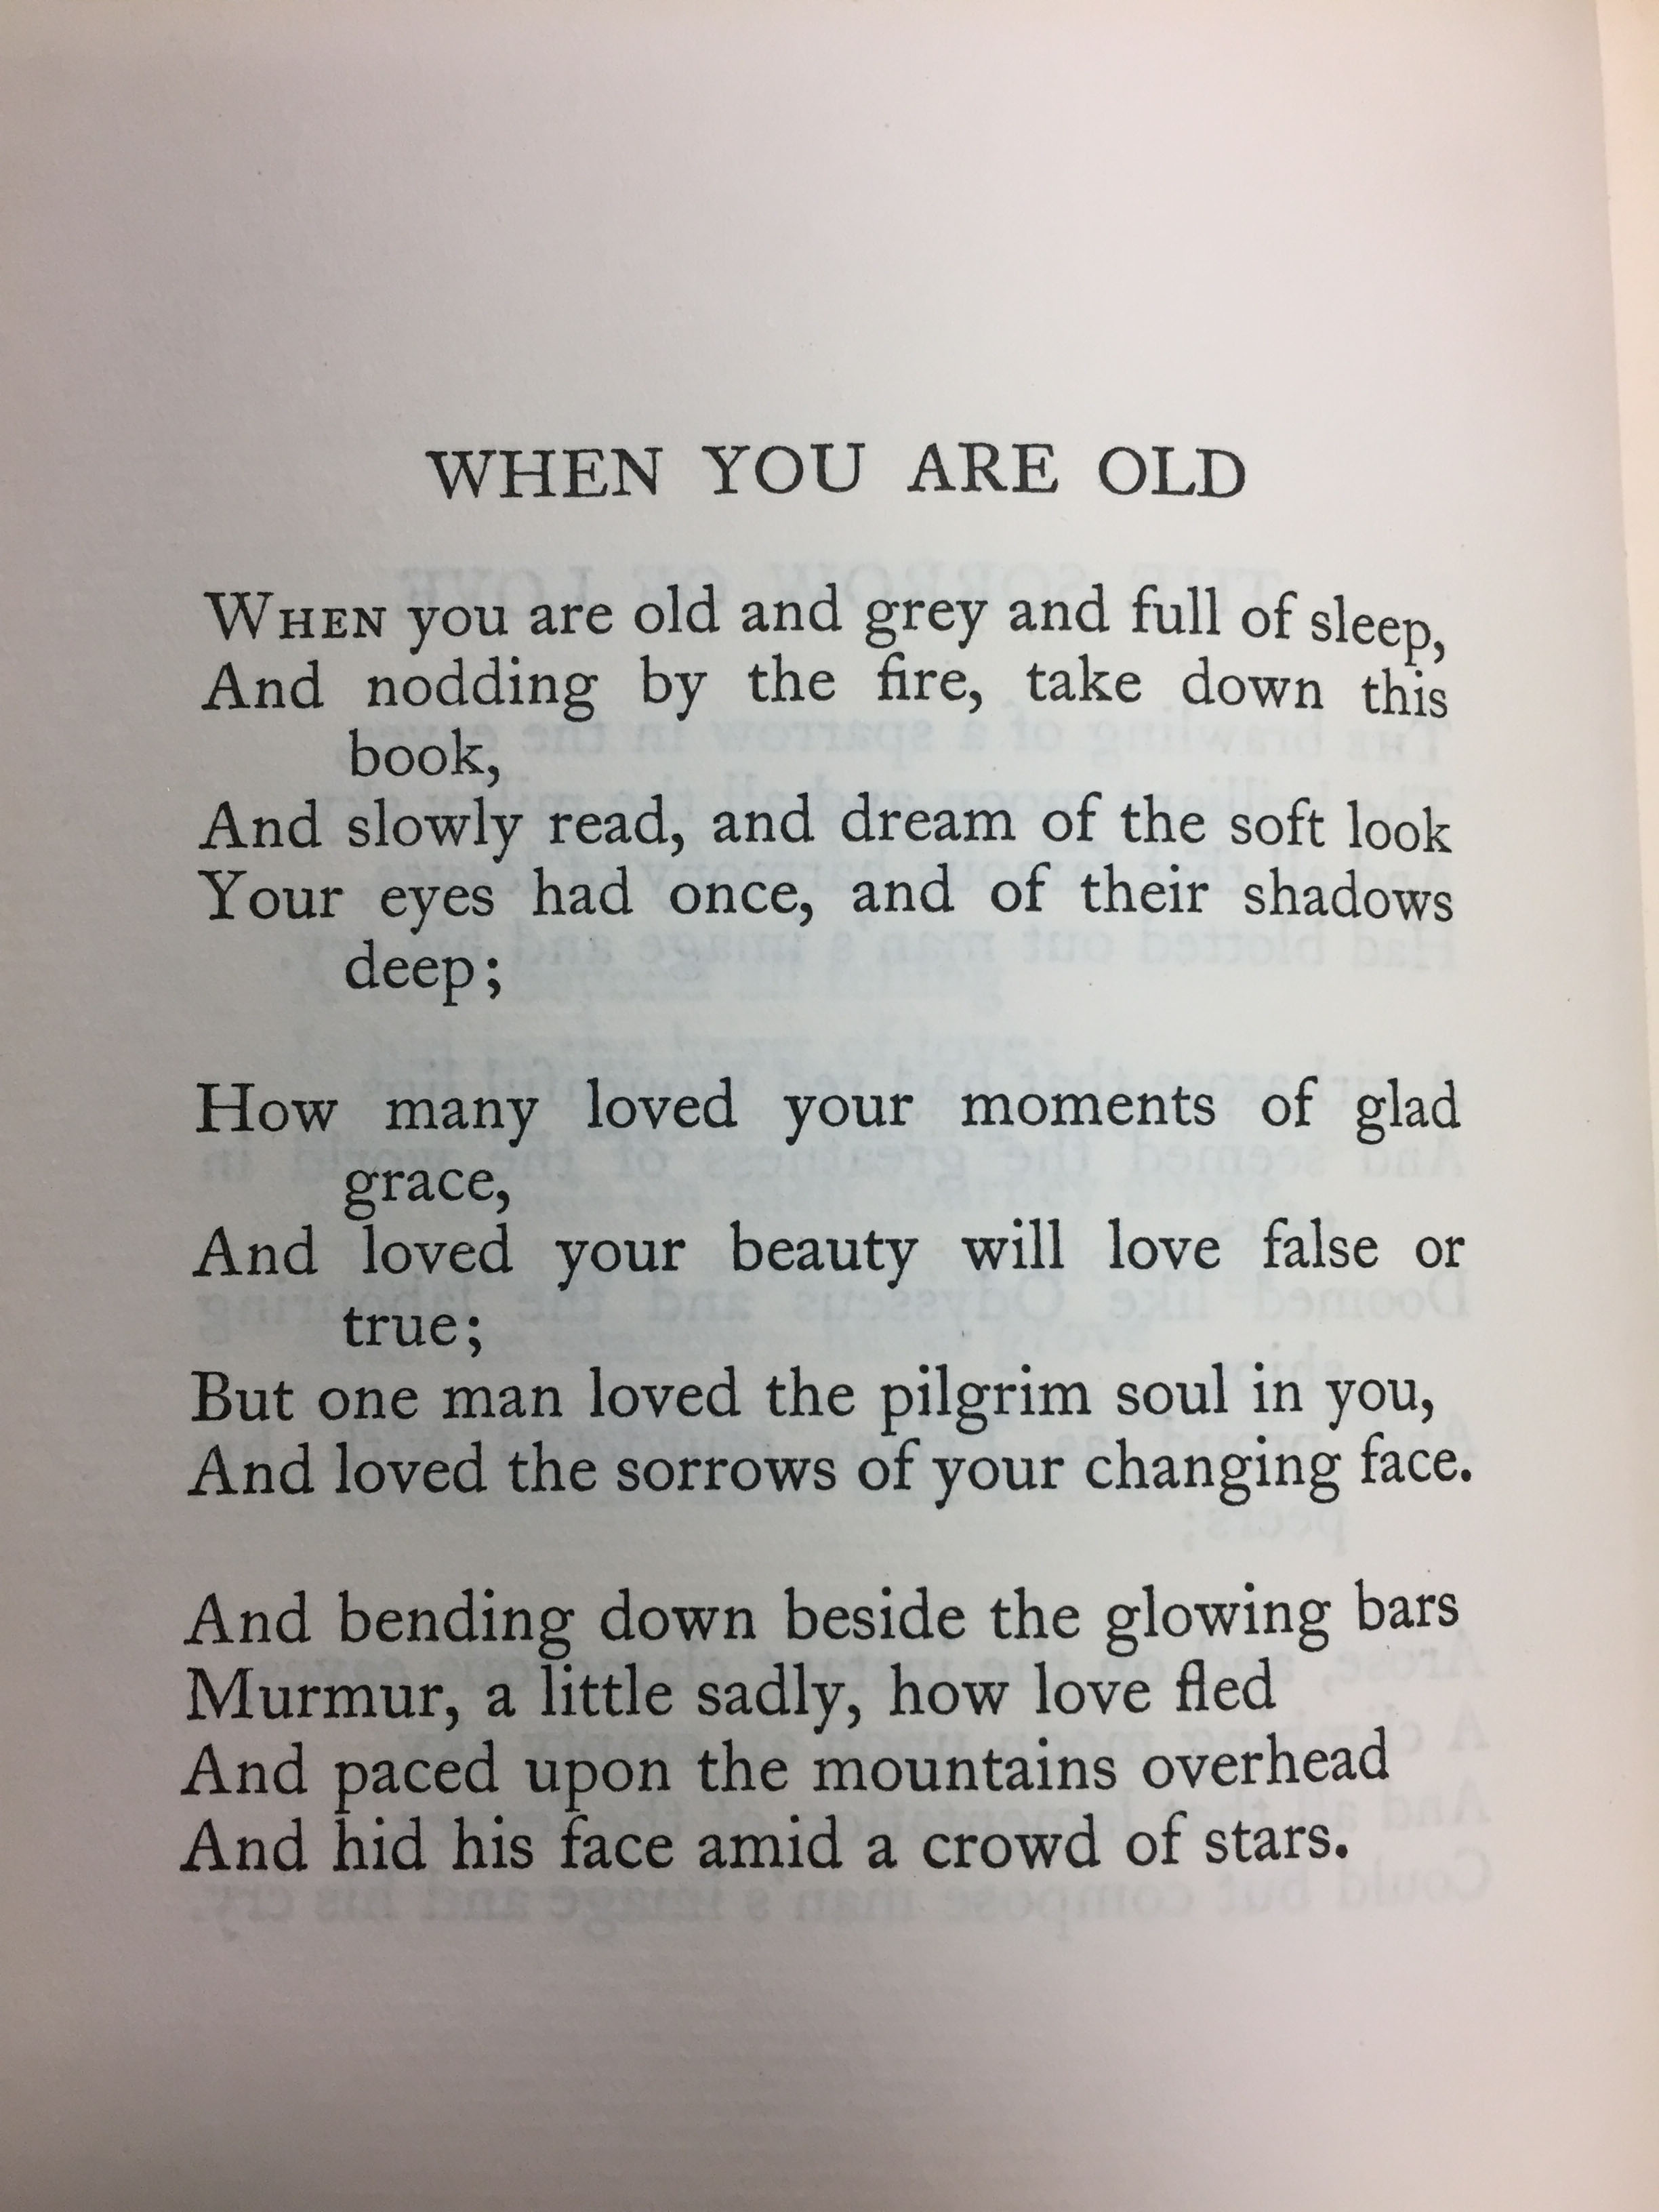 "Revised version of the poem, ""When You Are Old,"" as it appears in W. B. Yeats, Collected Works in Verse and Prose (Stratford-on-Avon: Shakespeare Head Press, 1908) (PR5900 .A3 1908 v.1). Note the changes in the last stanza."